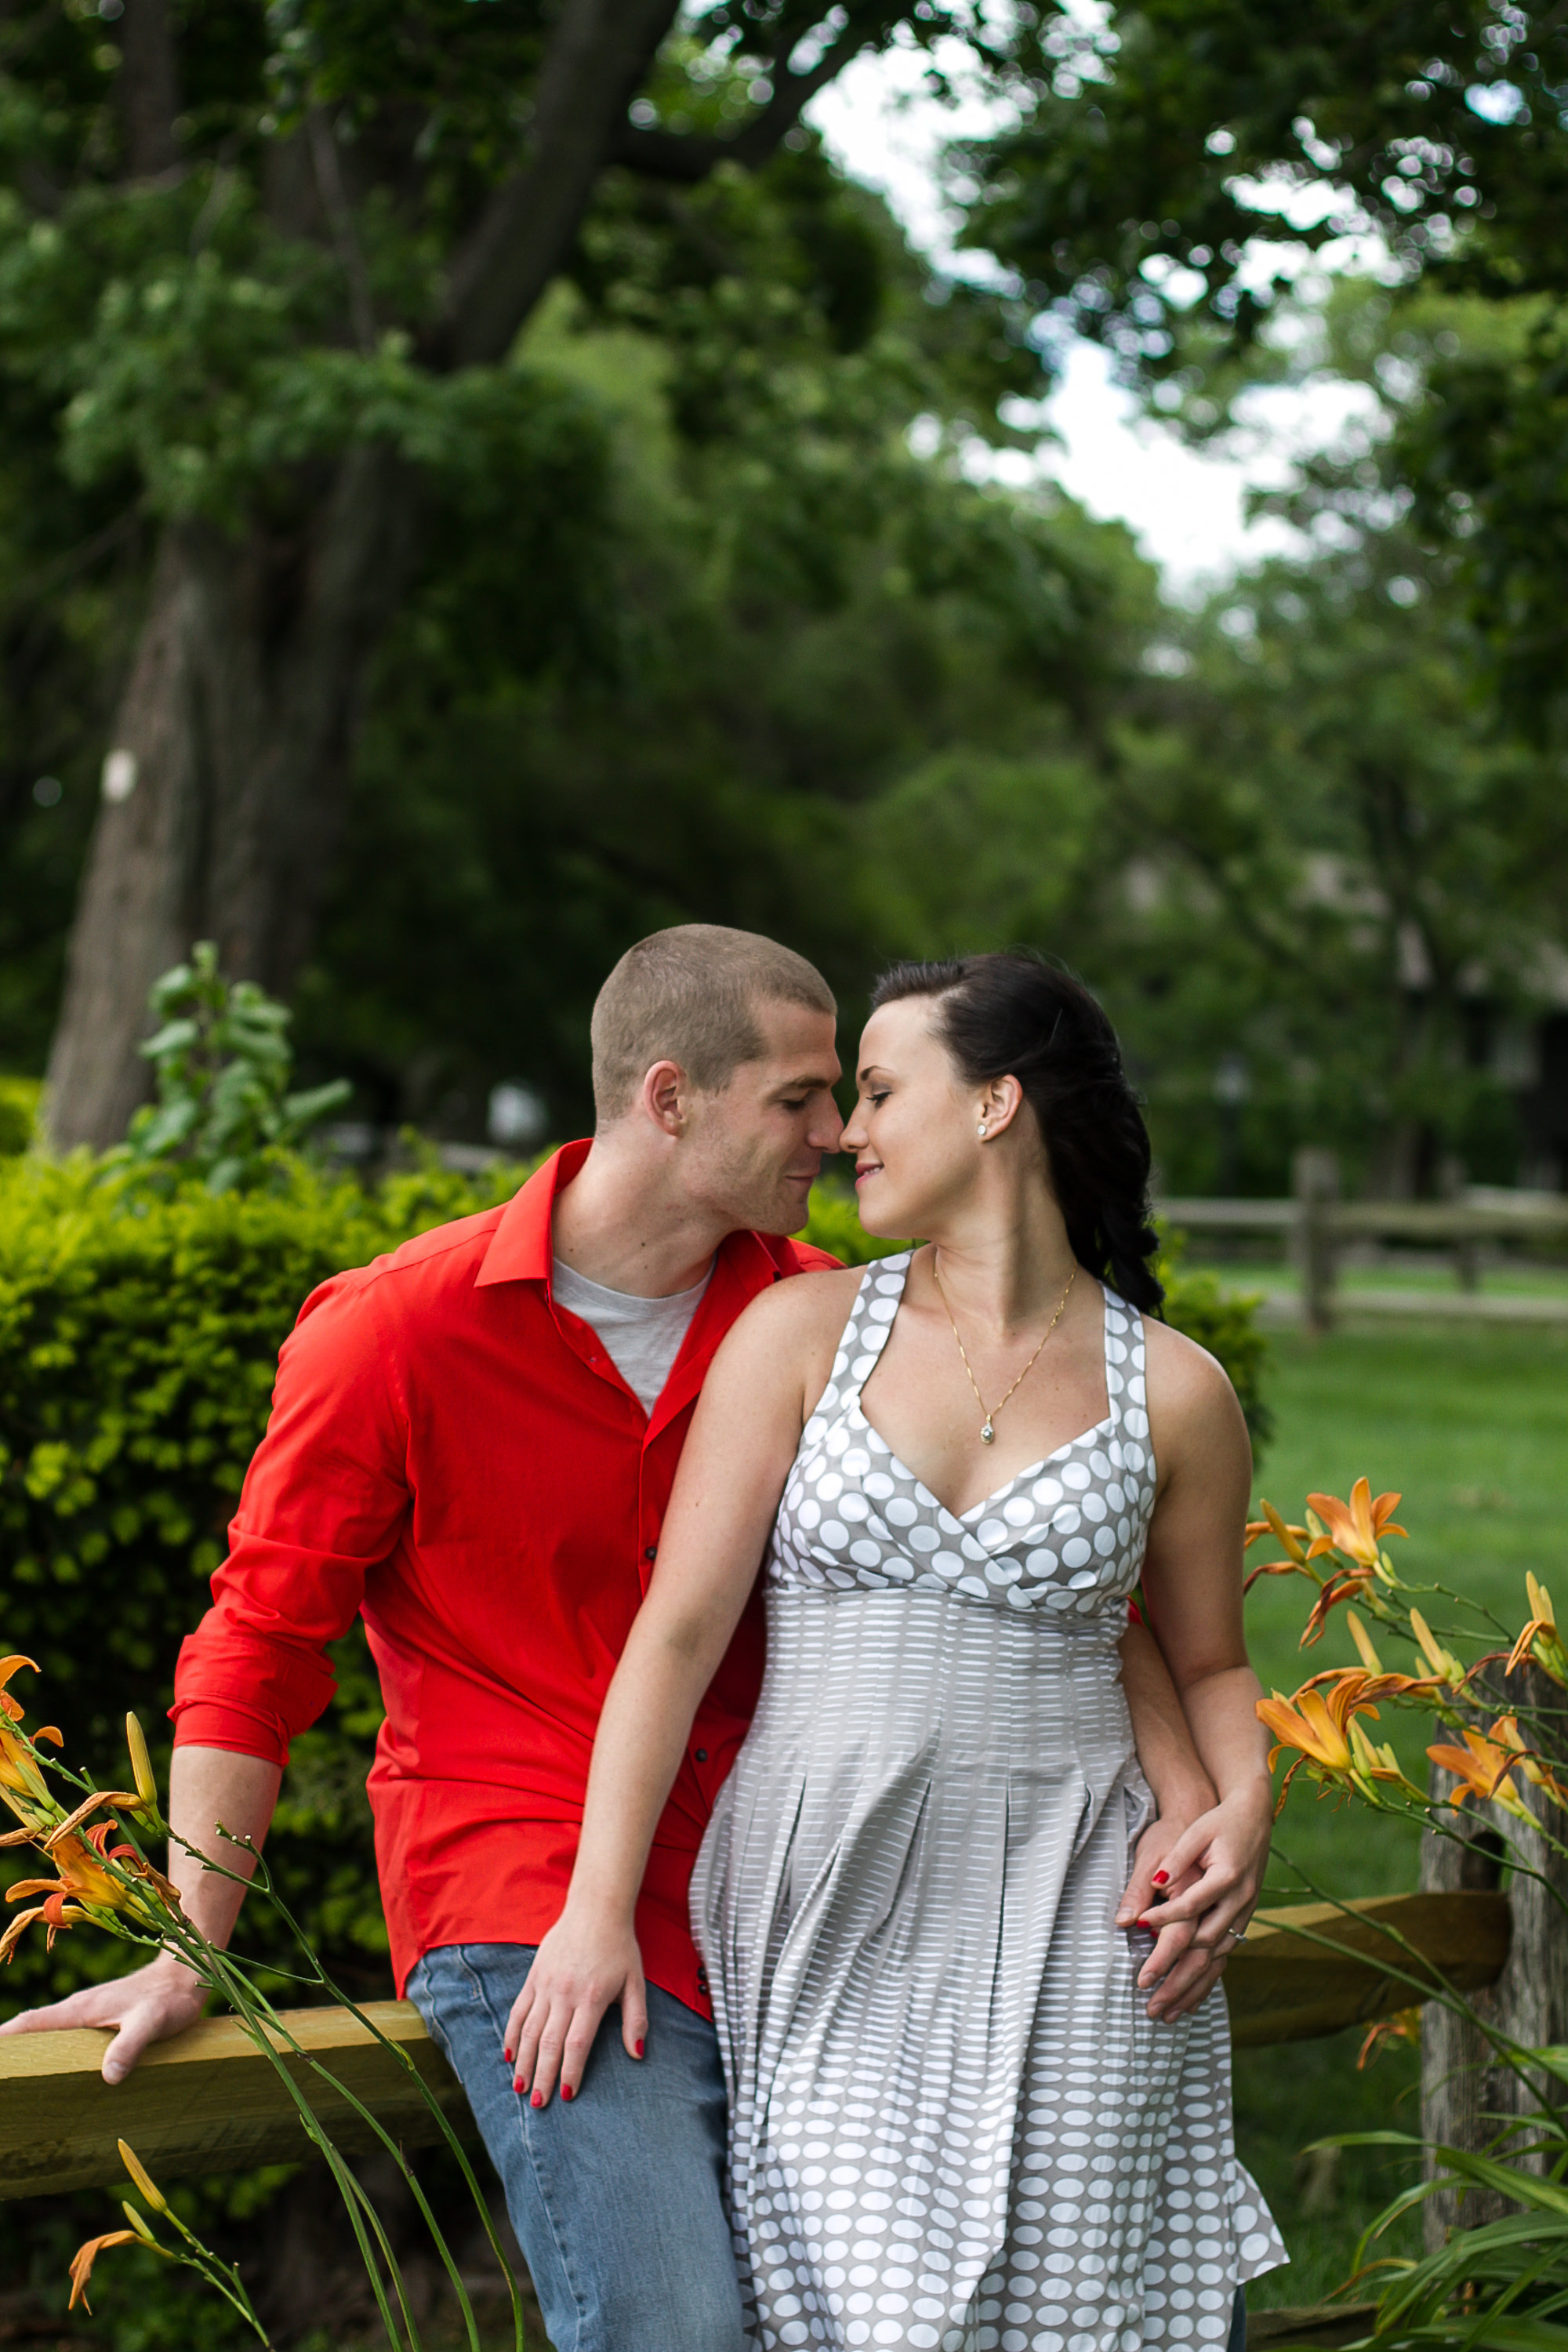 This park on the river was really special to these two so it was an easy choice to do their engagement session there!!